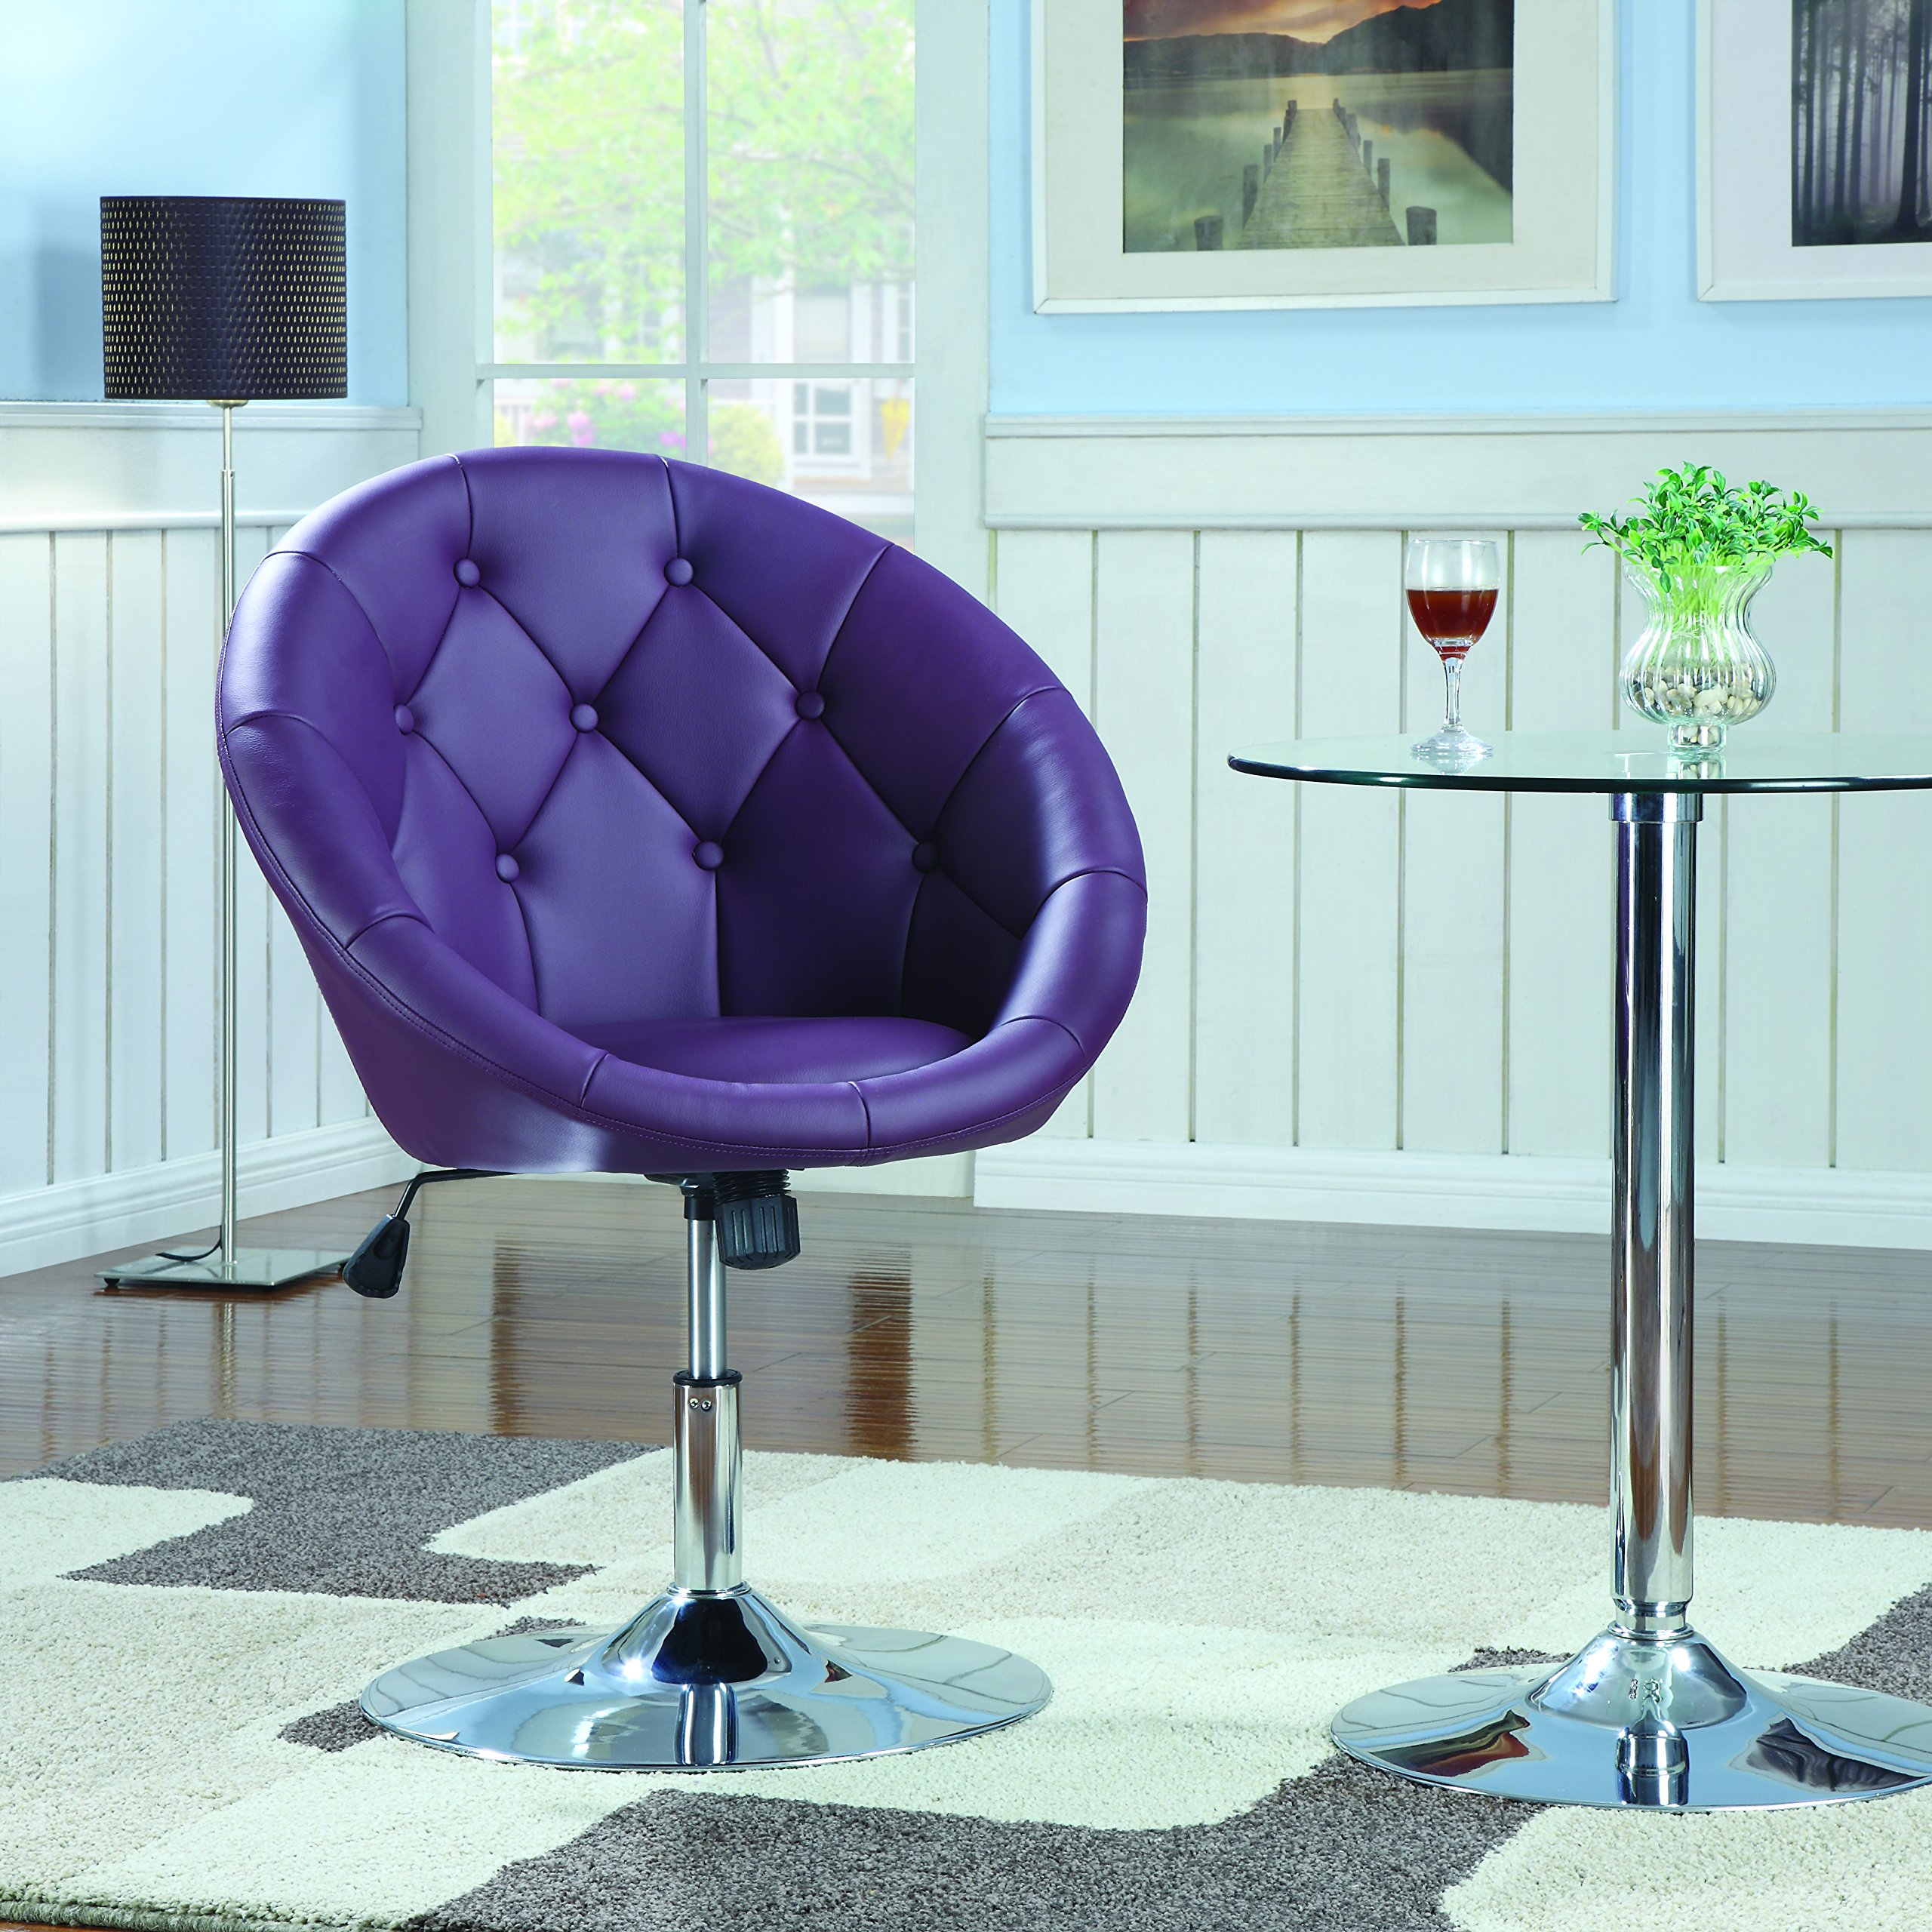 Coaster Contemporary Swivel Accent Chair with Faux Leather Upholstered Seat and Button Tufting Back, Purple